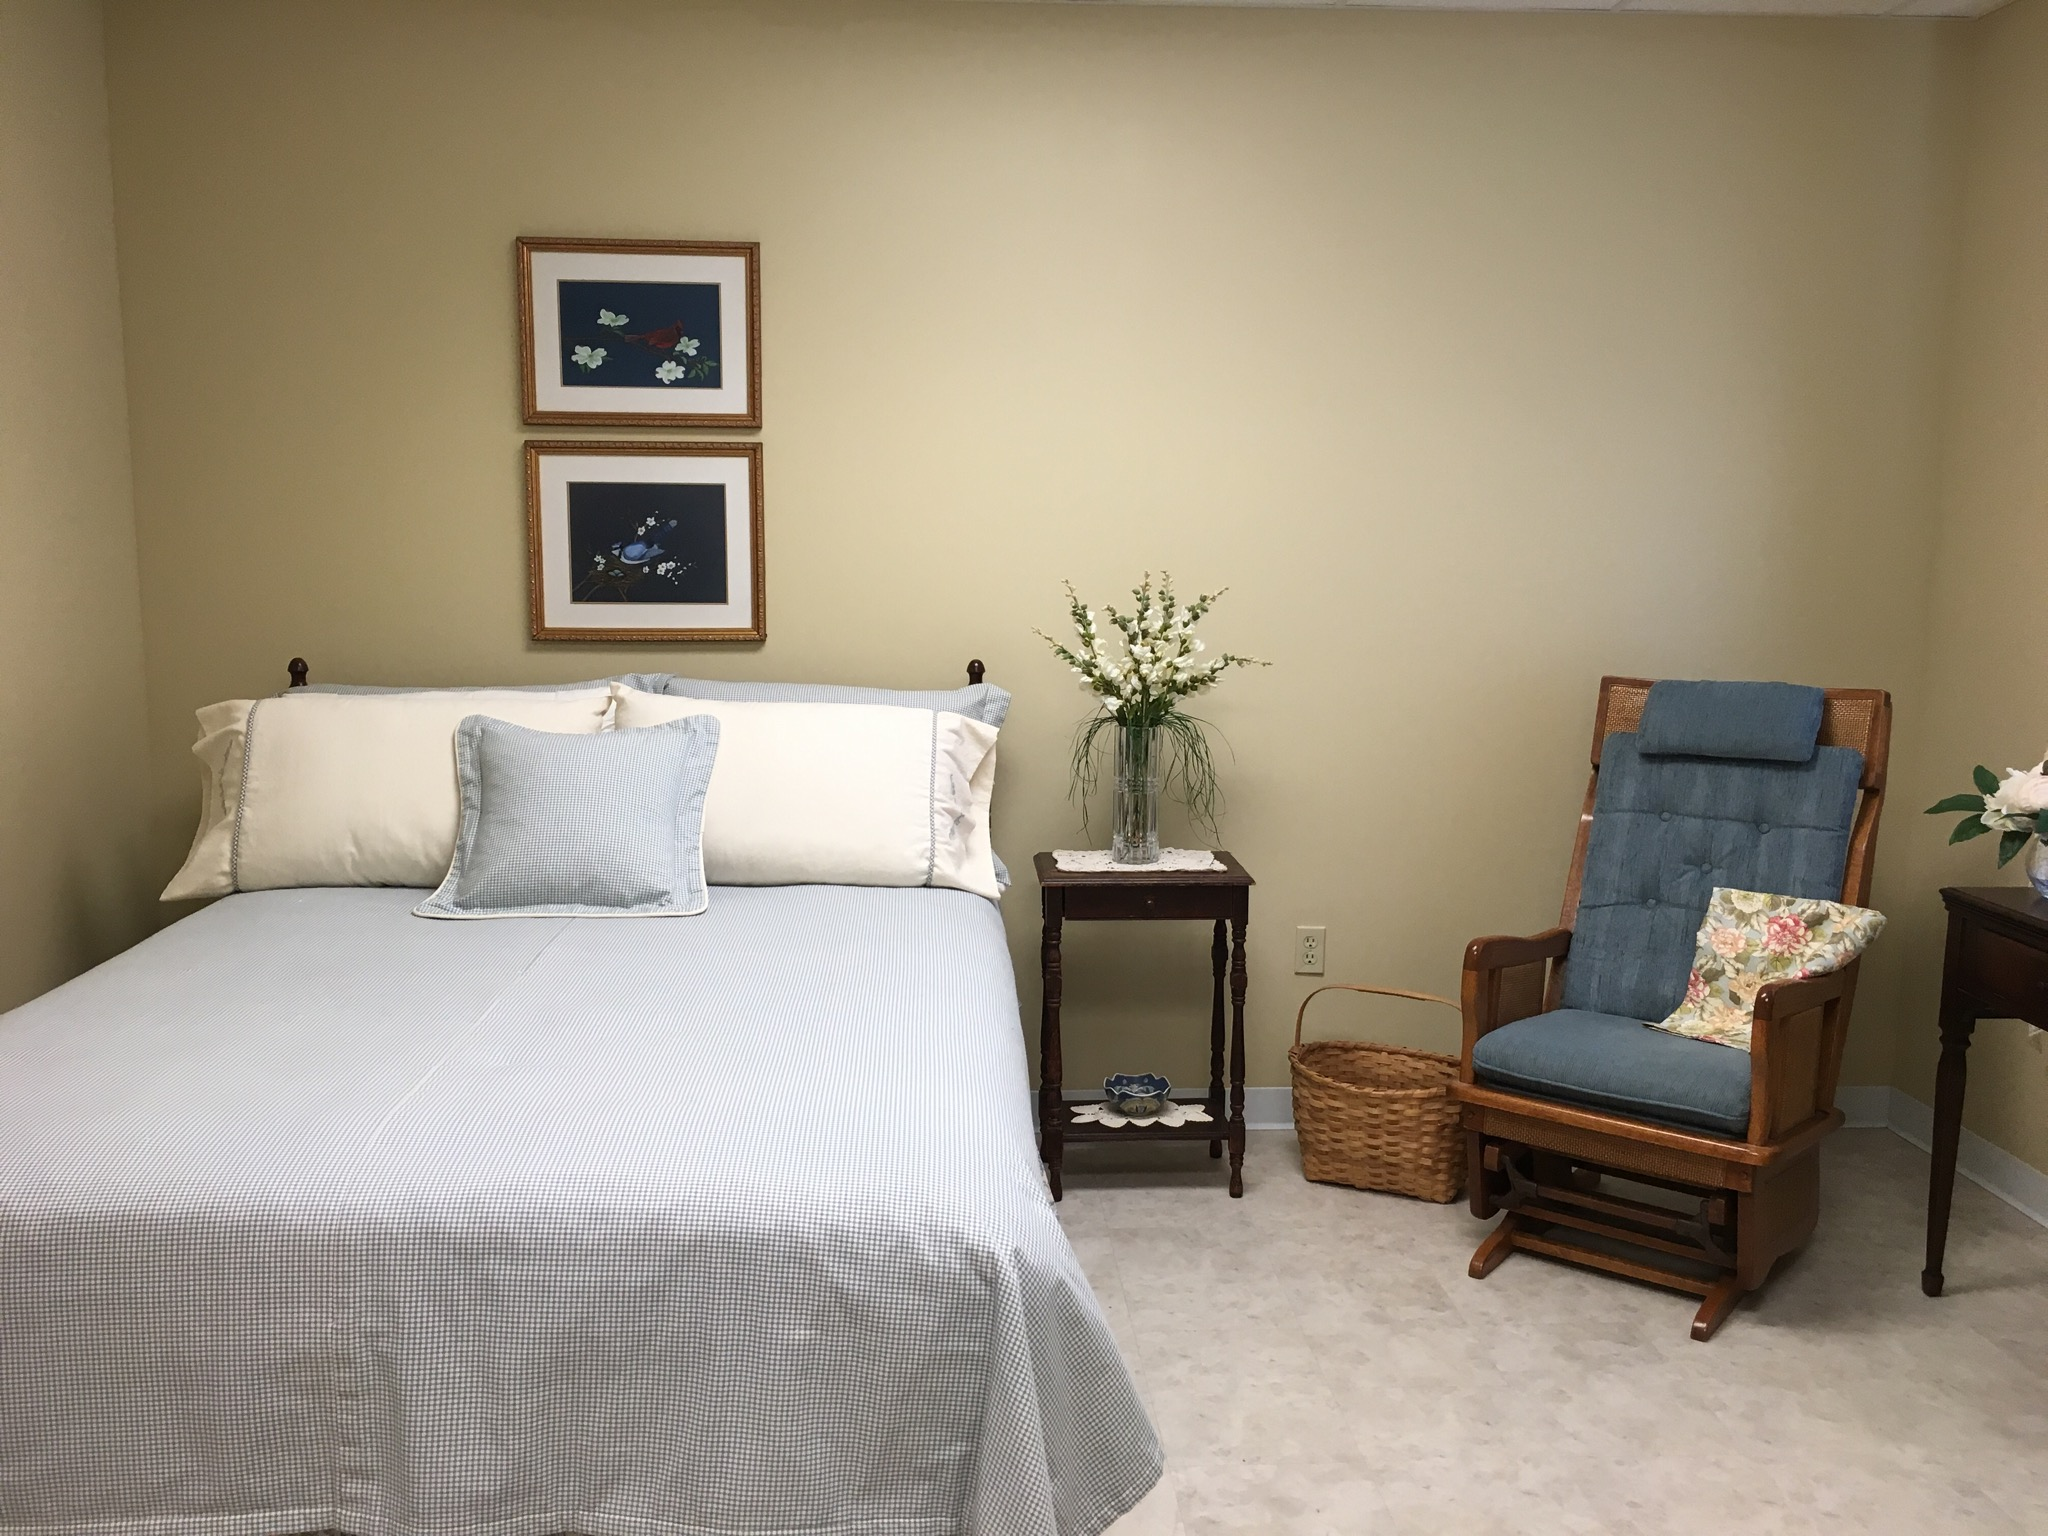 Country Meadow Personal Care Home | About Us | Greenwood, MS